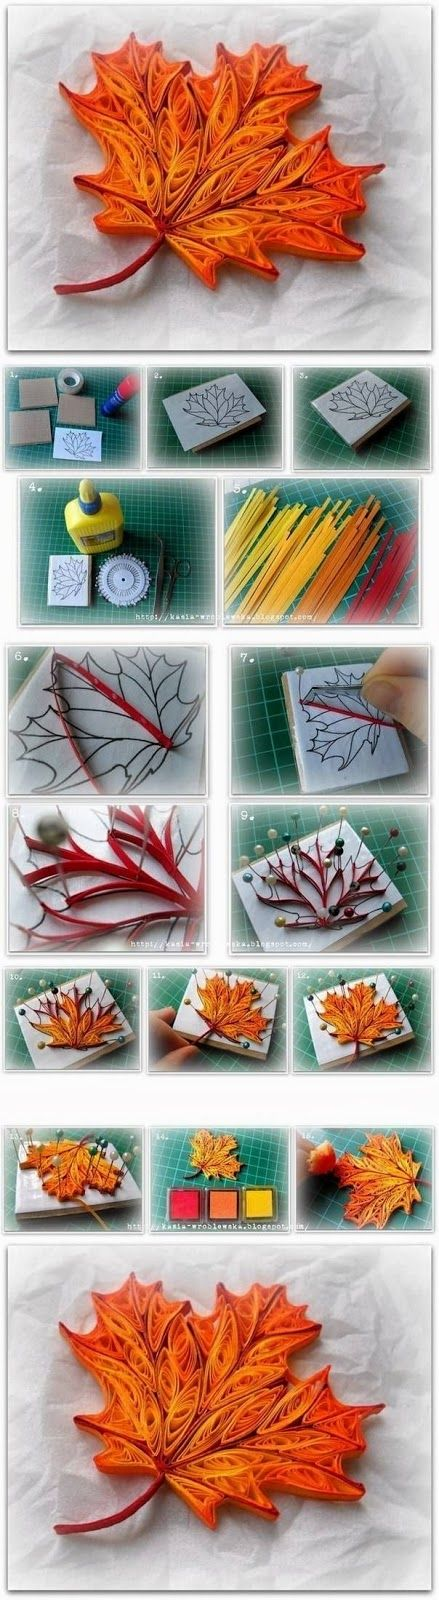 quilling a maple leaf.  This makes me want to try quilling more than anything else I've ever seen.